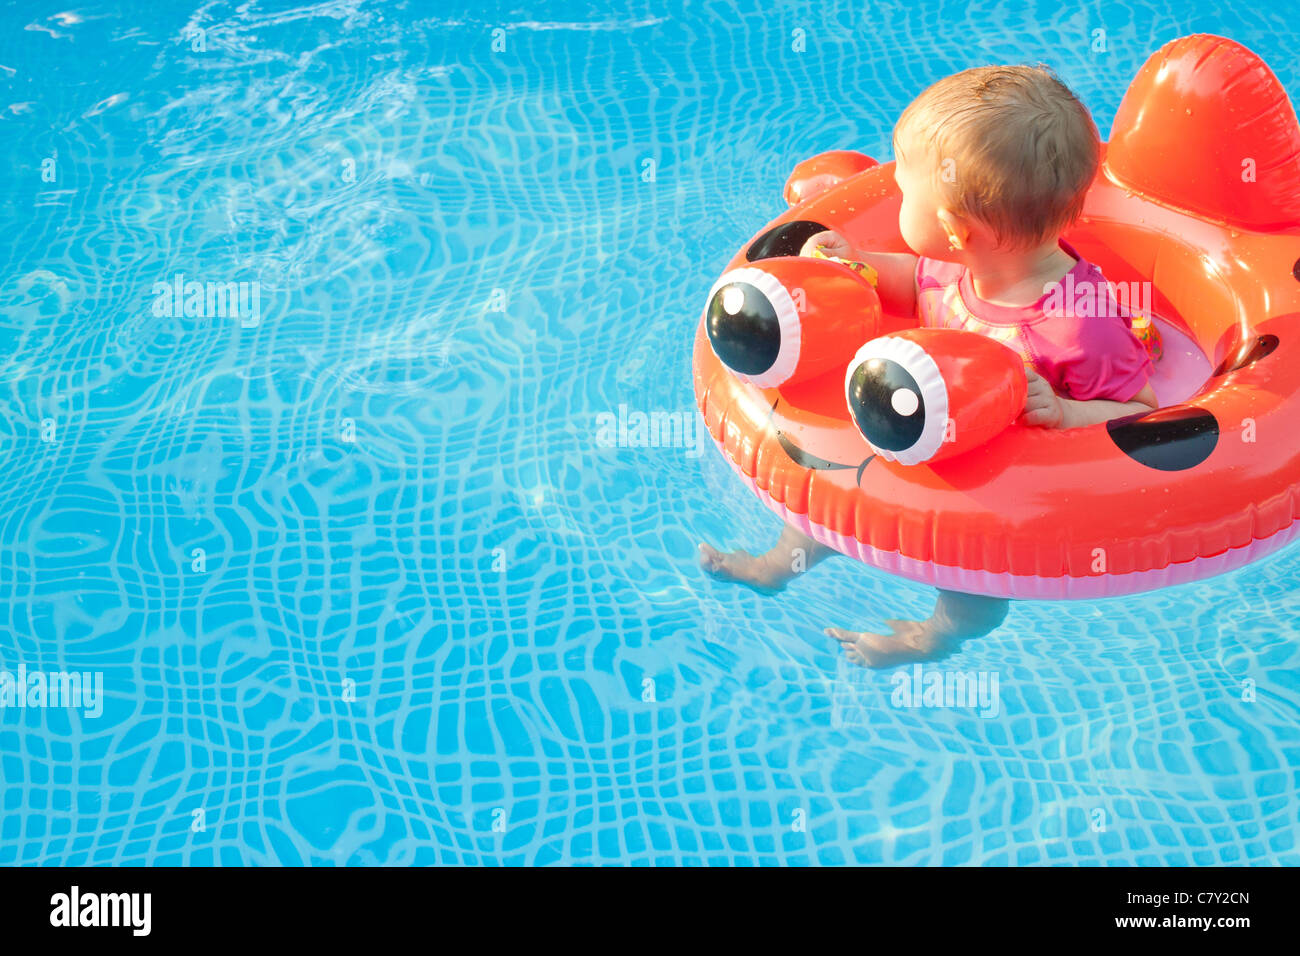 Small child in floatation device looking away while floating in a pool alone - Stock Image